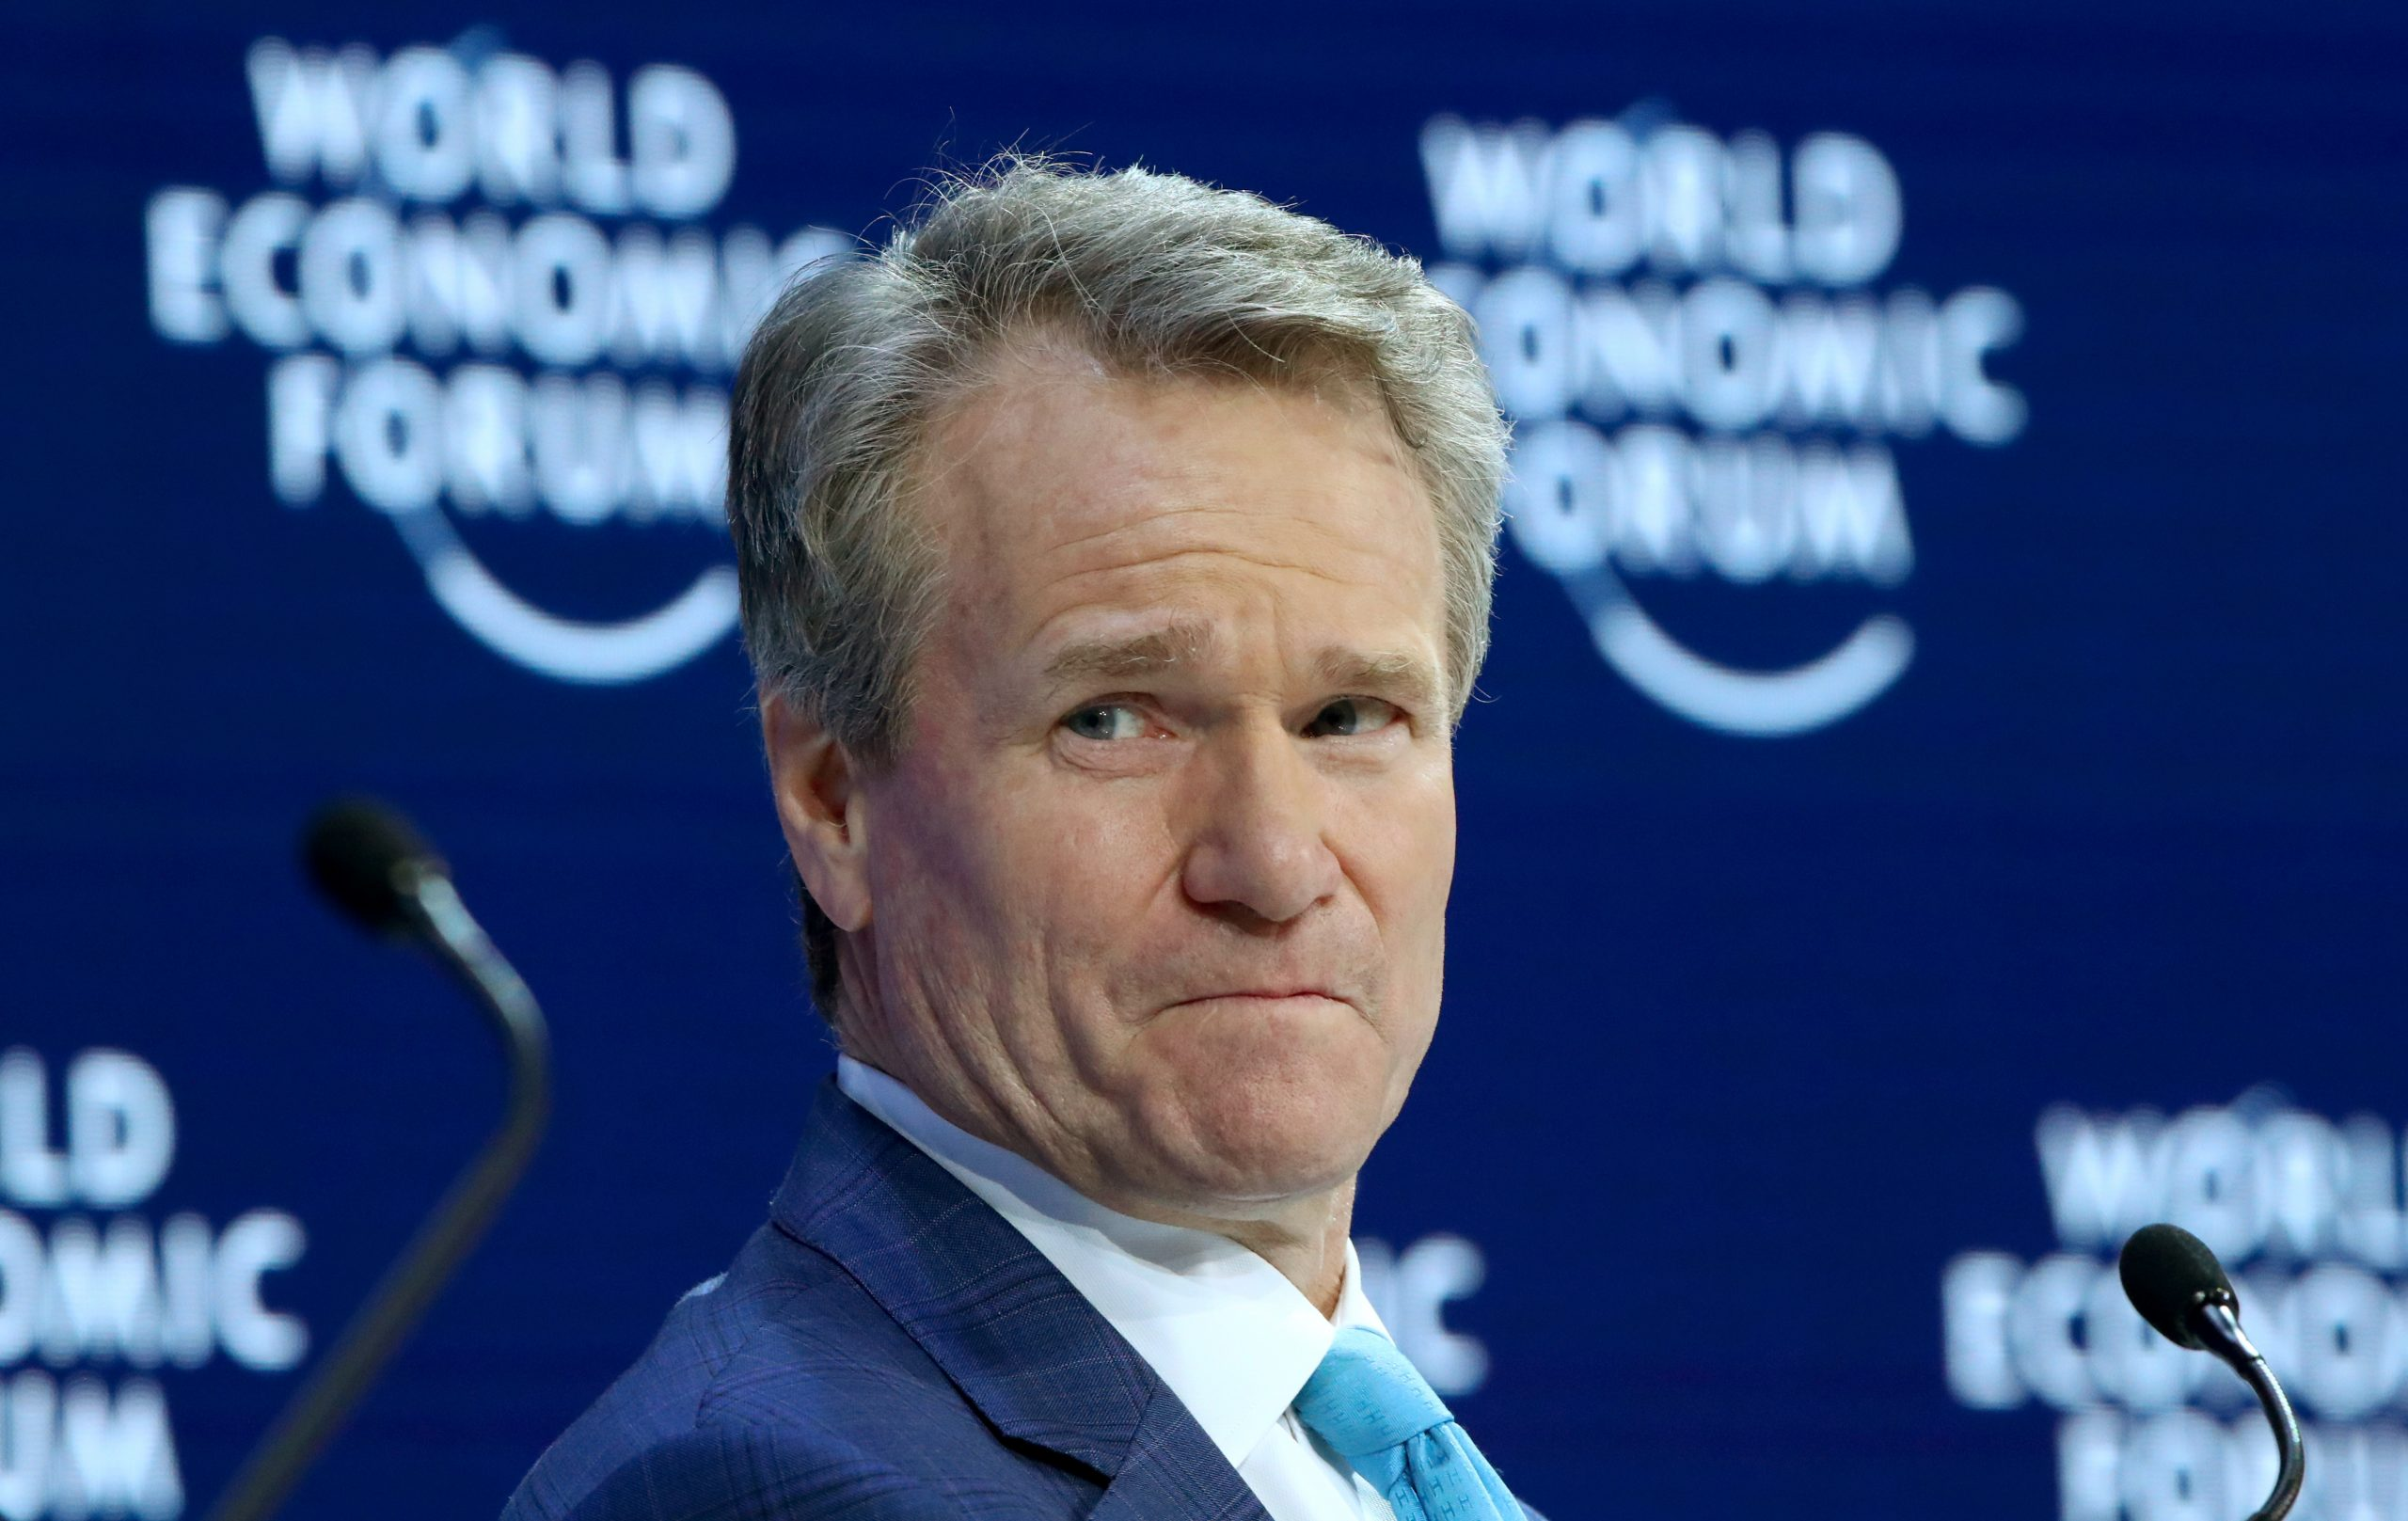 Chairman and CEO of Bank of America Brian T. Moynihan attends a session at the 50th World Economic Forum (WEF) annual meeting in Davos, Switzerland, January 21, 2020. REUTERS/Denis Balibouse/File Photo